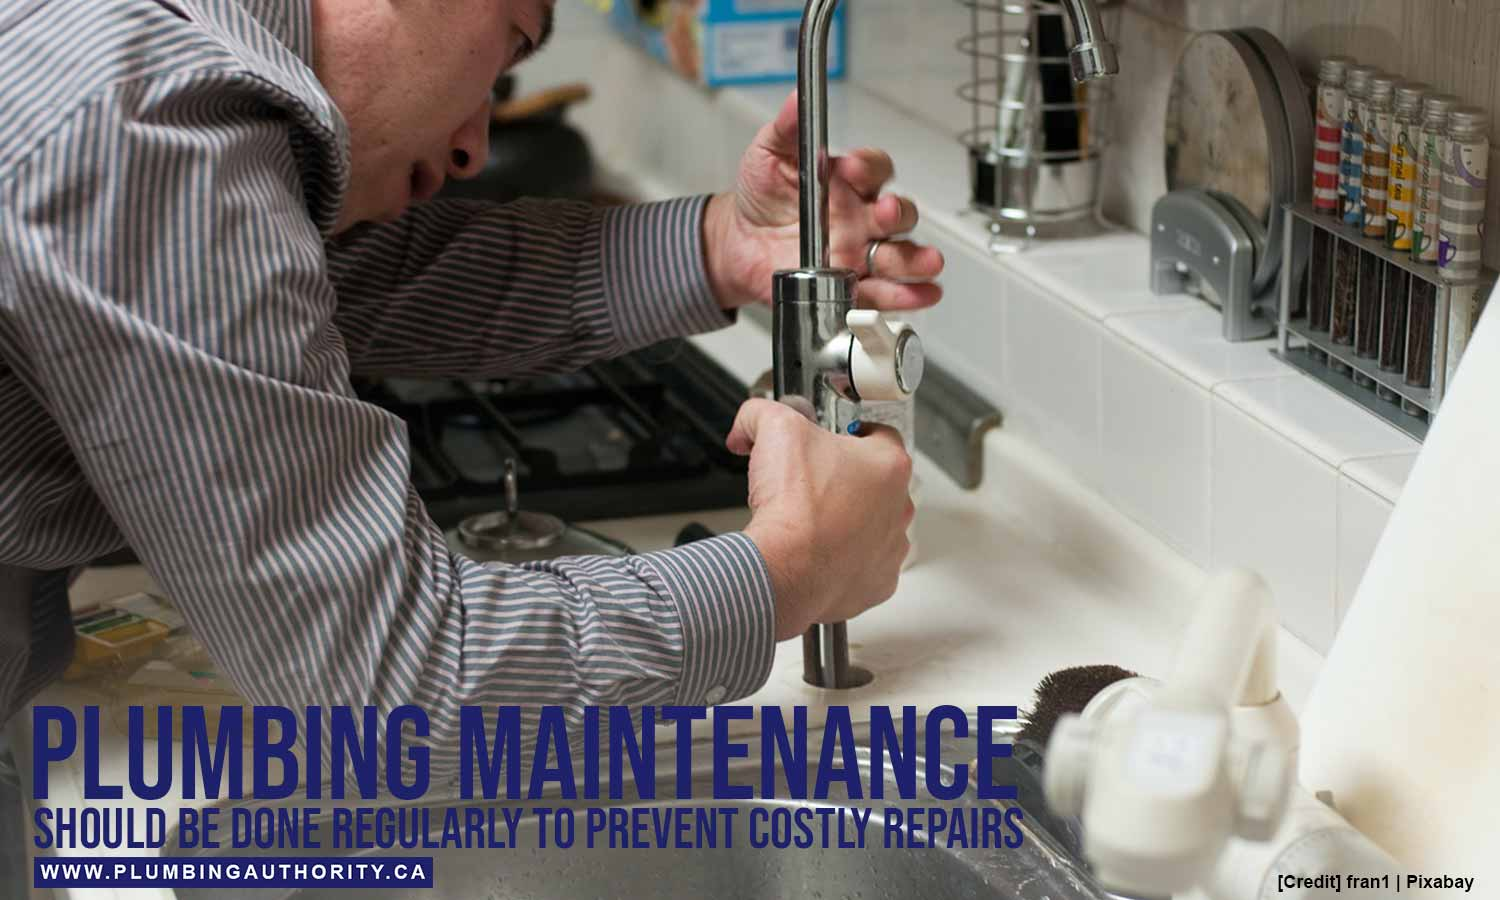 Plumbing maintenance should be done regularly